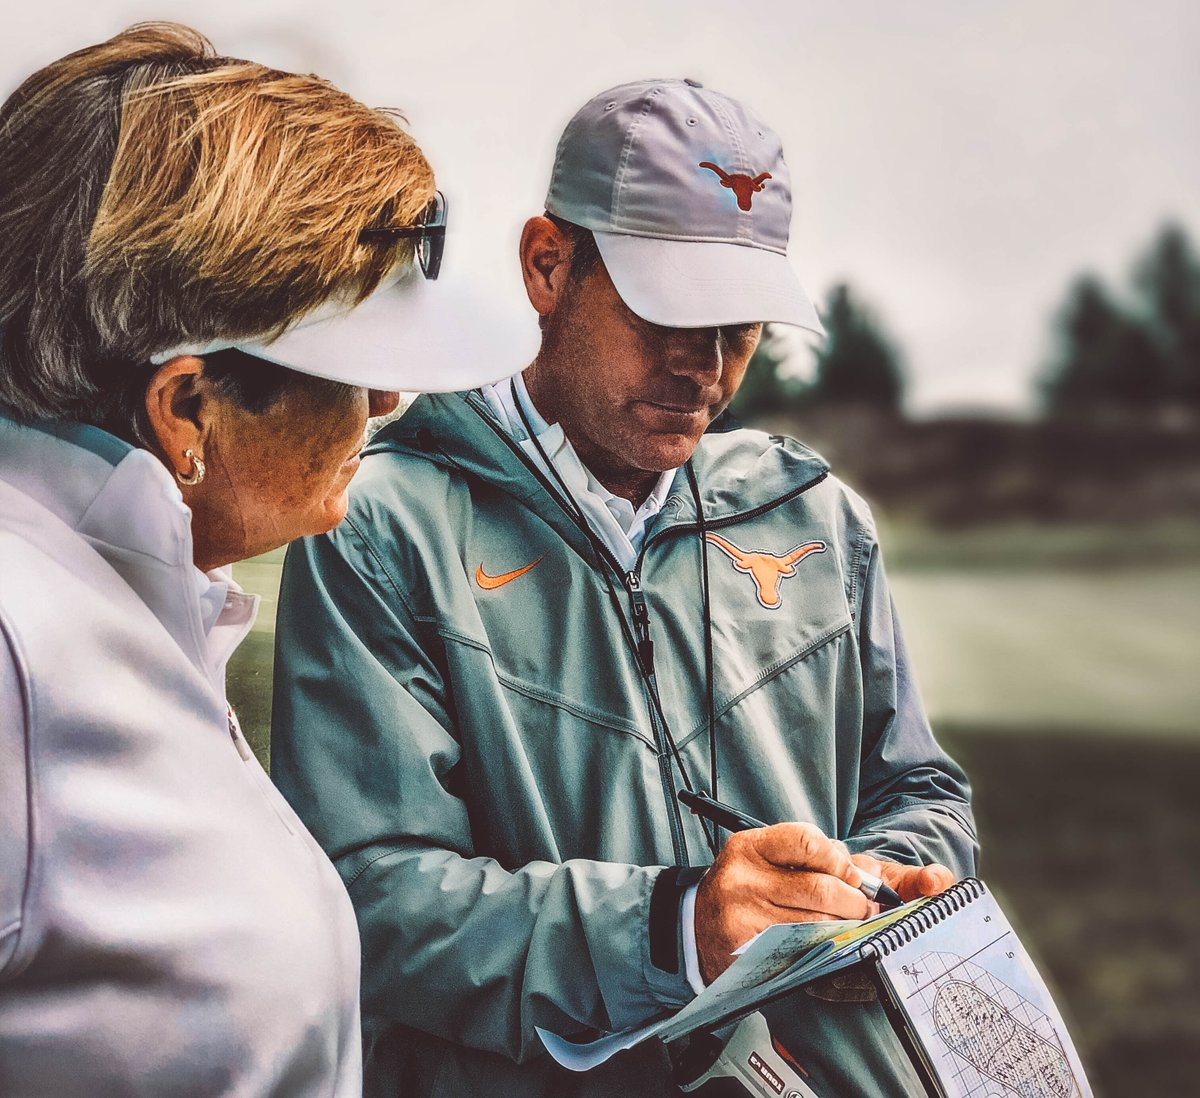 Happy #NationalCoachesDay! Blessed to have the best coaches in the country here at Texas 🤘